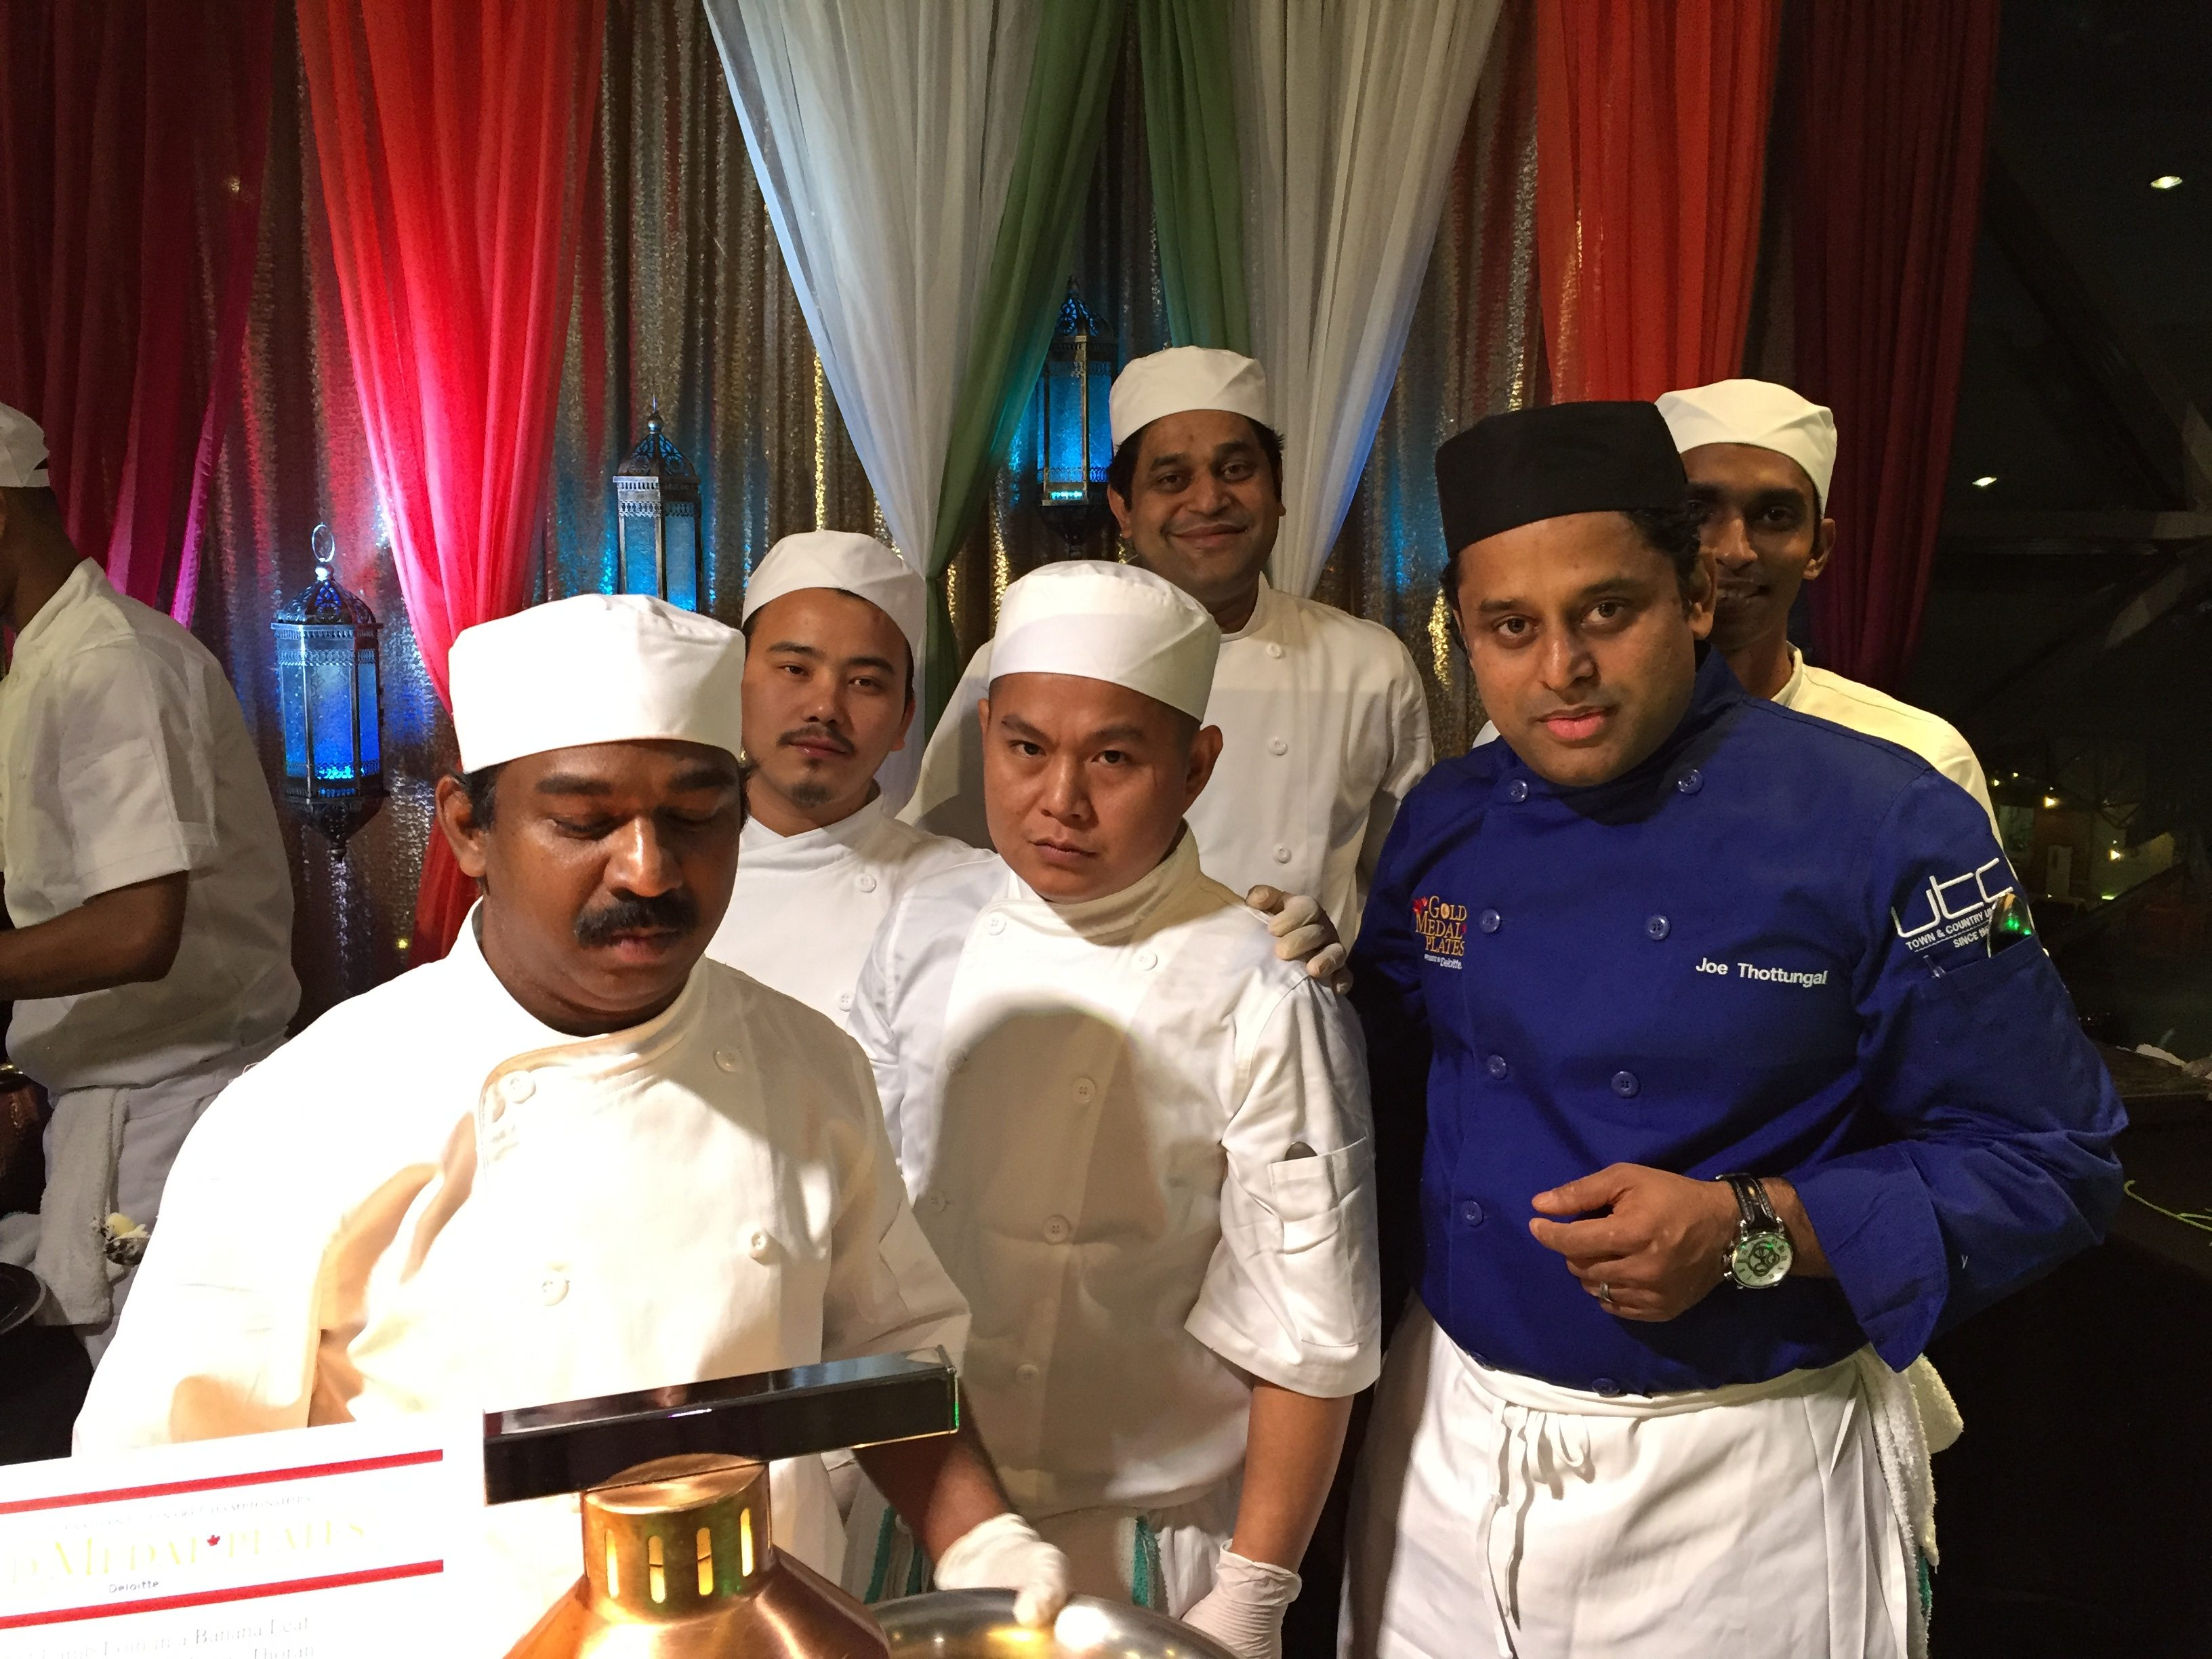 Chef Joe Thottungal and his team from Coconut Lagoon.